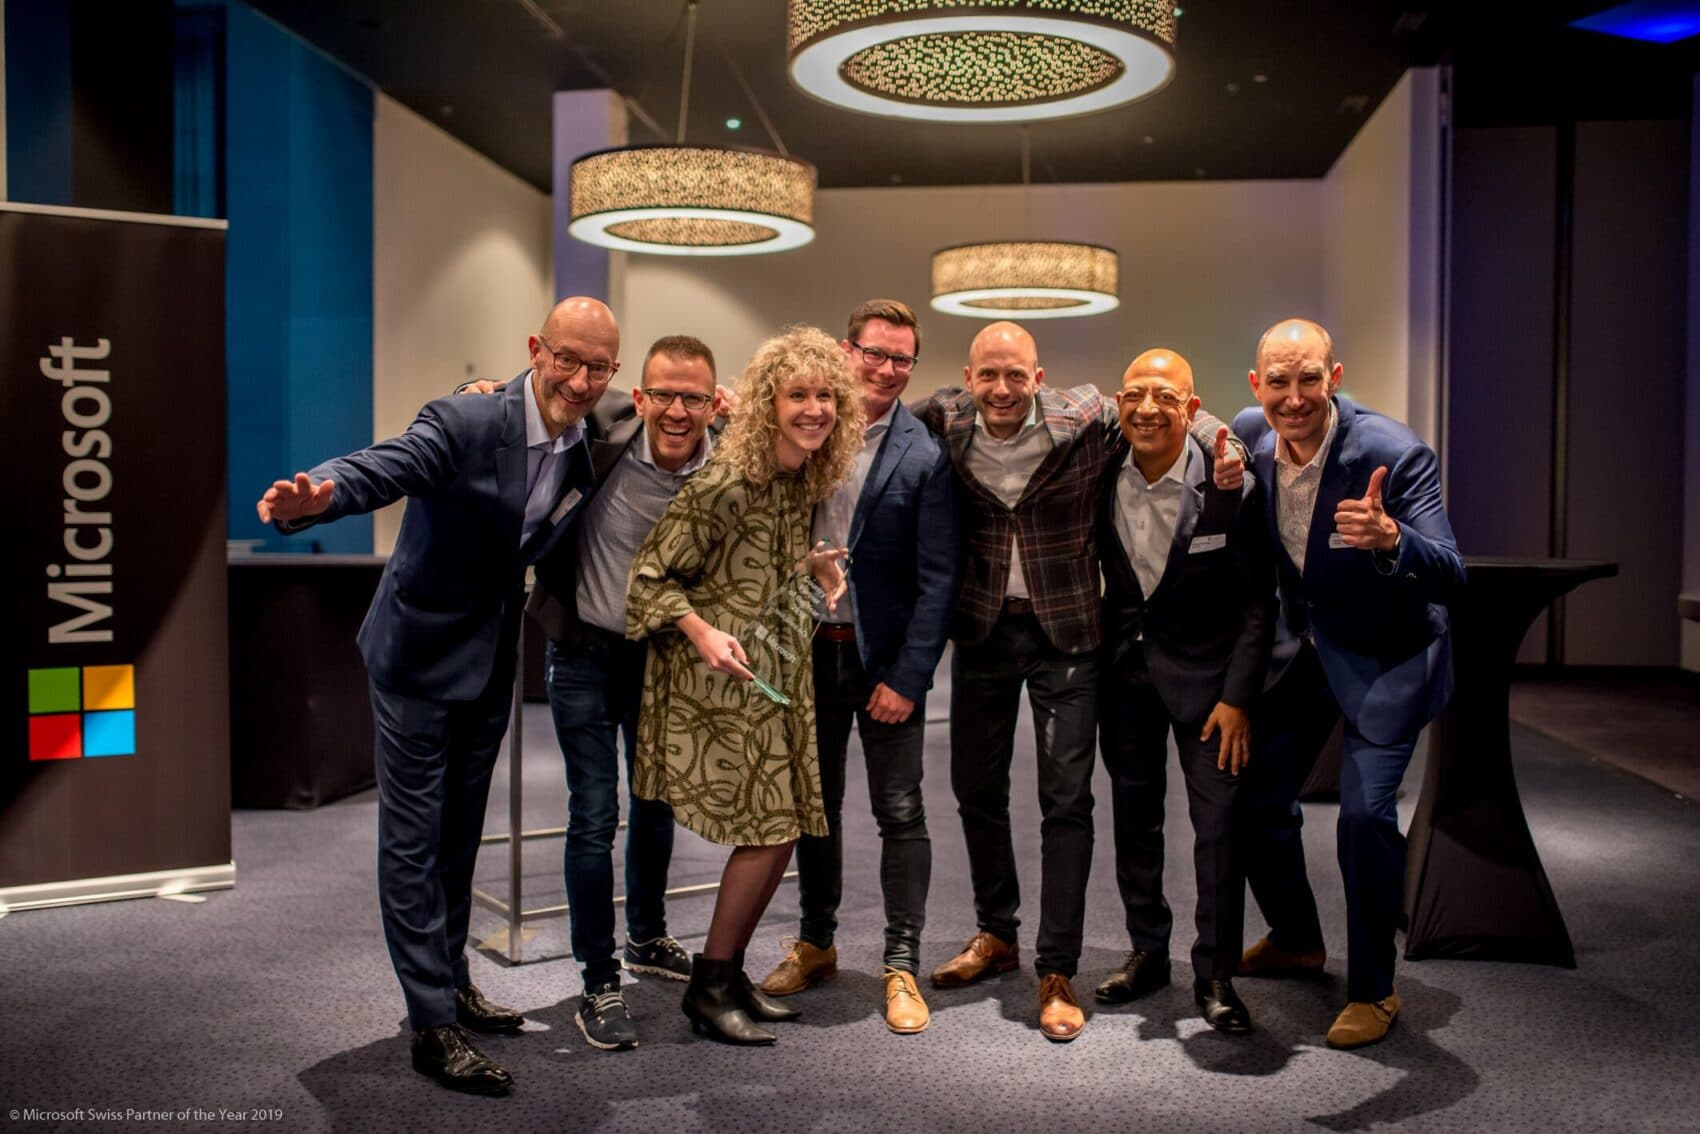 Swiss «Country Partner of the Year 2019»